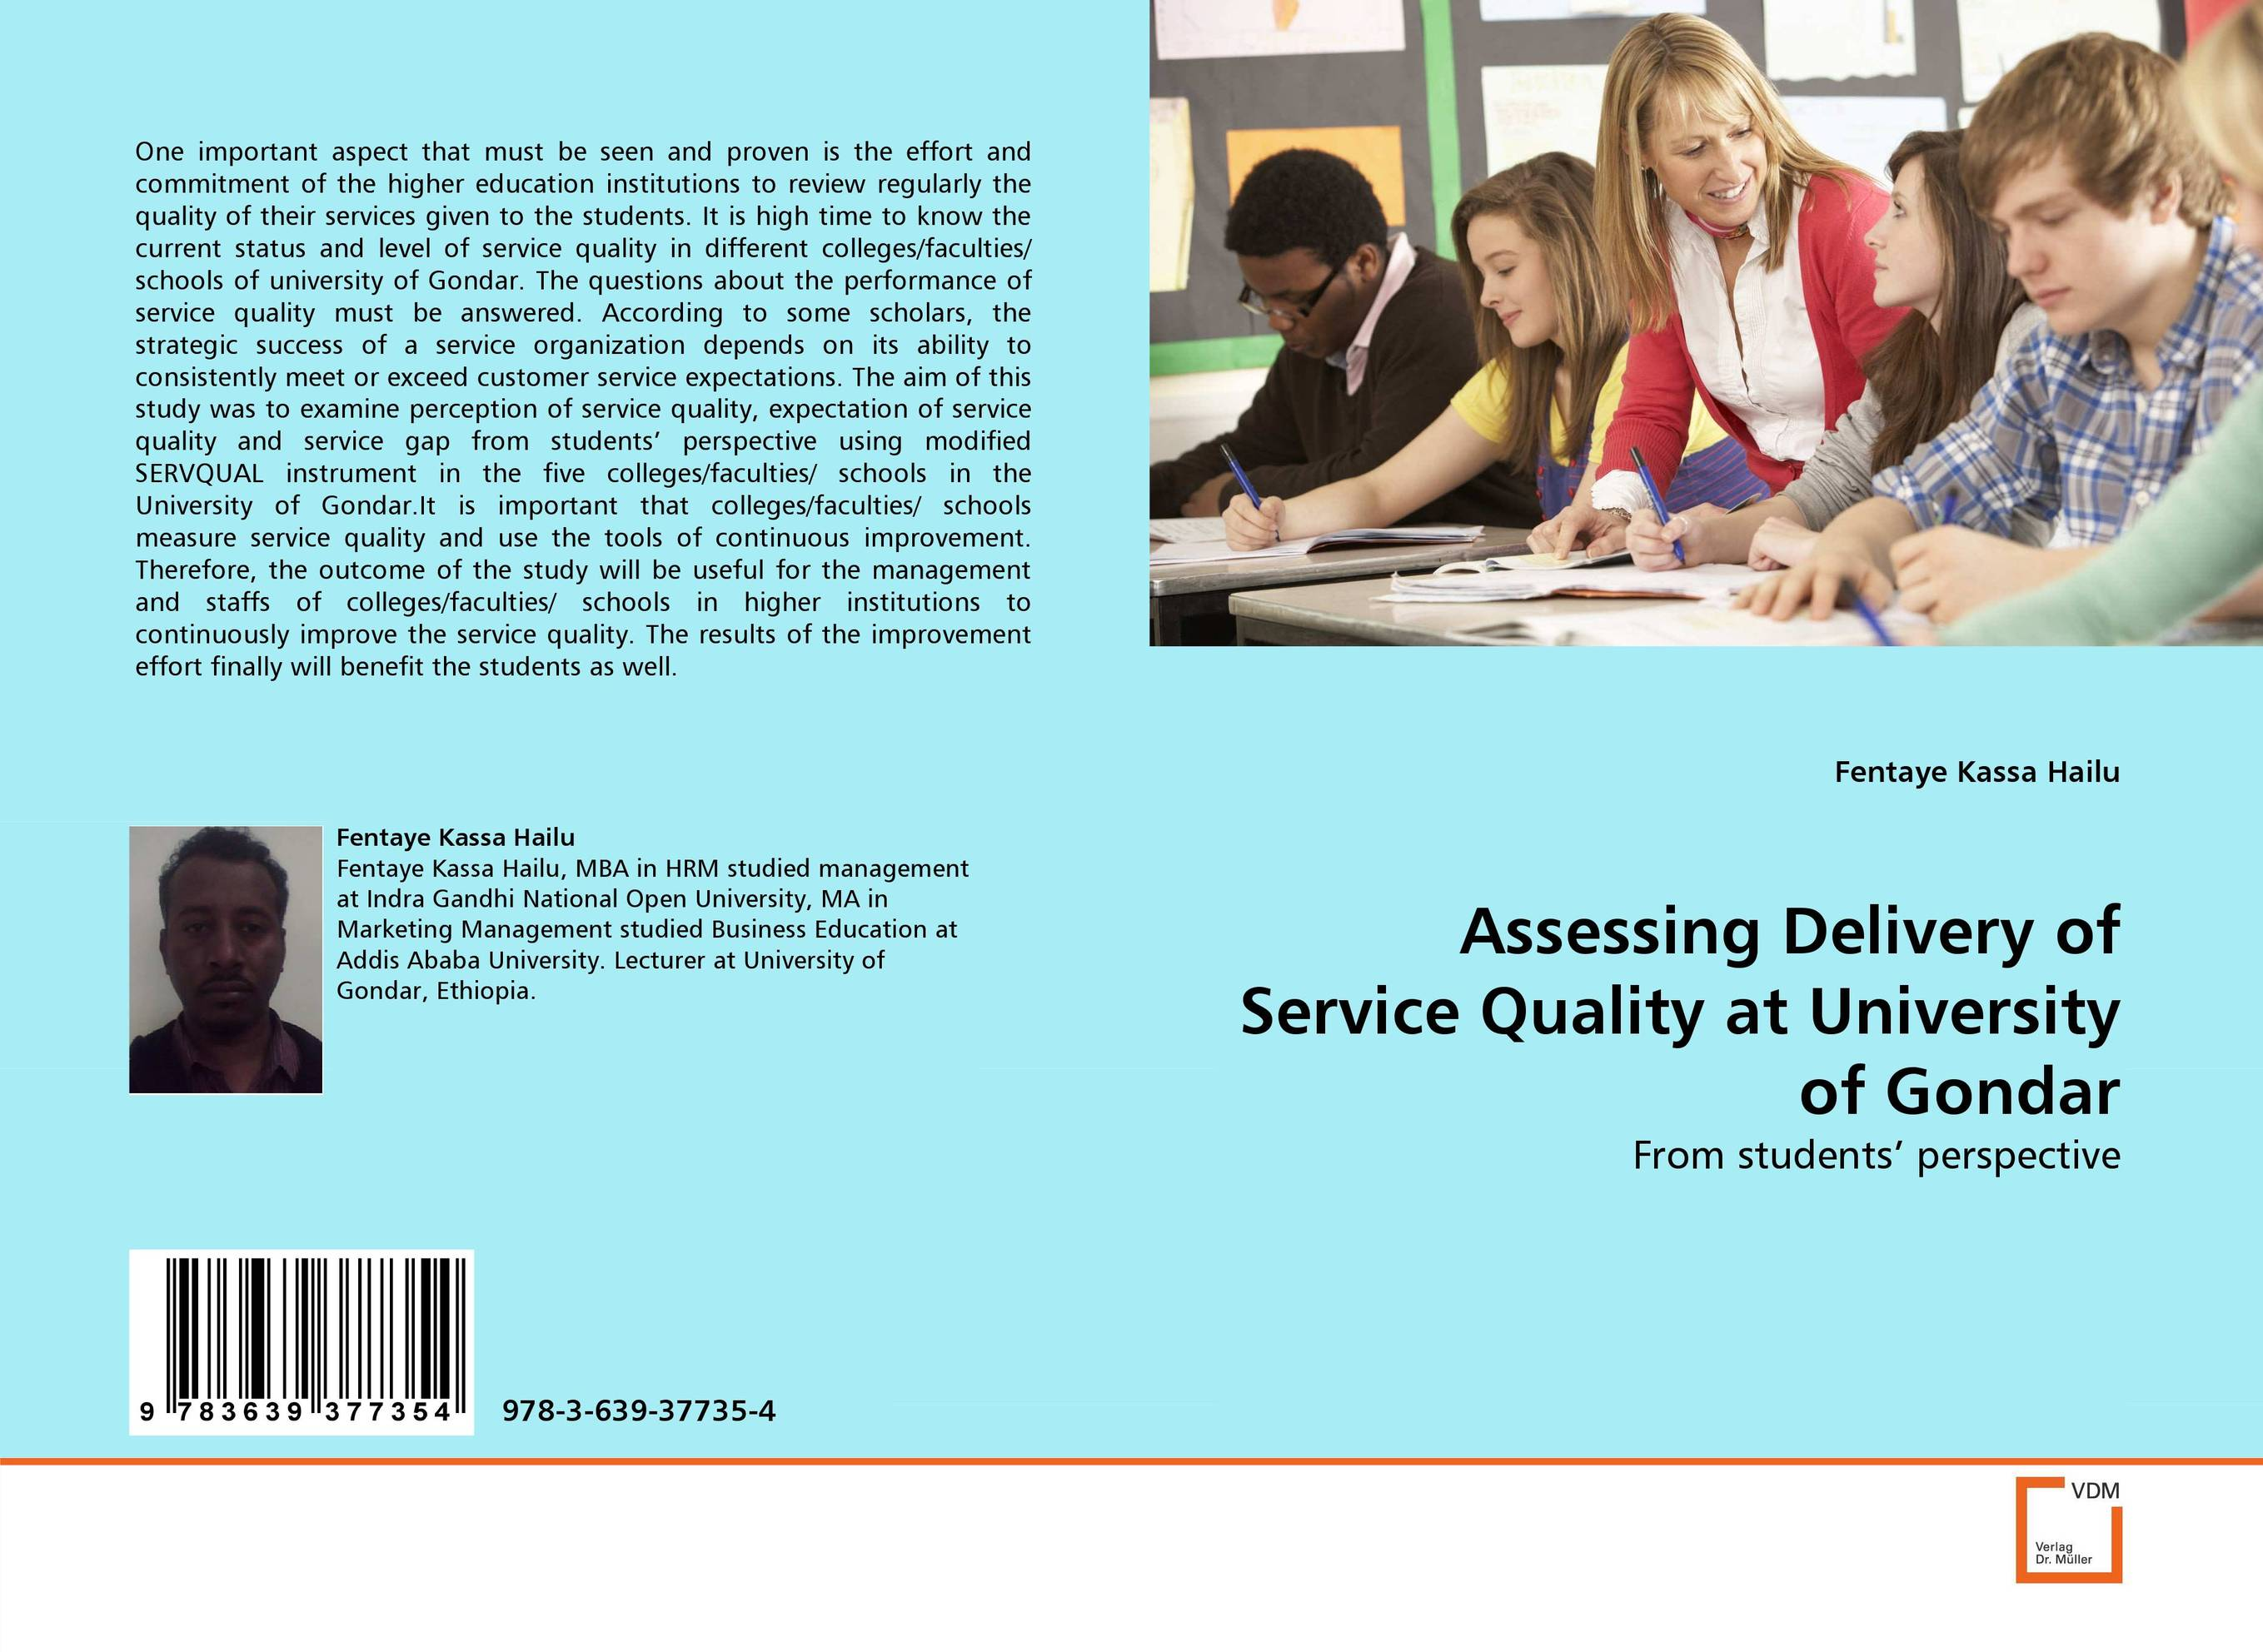 Assessing Delivery of Service Quality at University of Gondar designing quality of service solutions for the enterprise